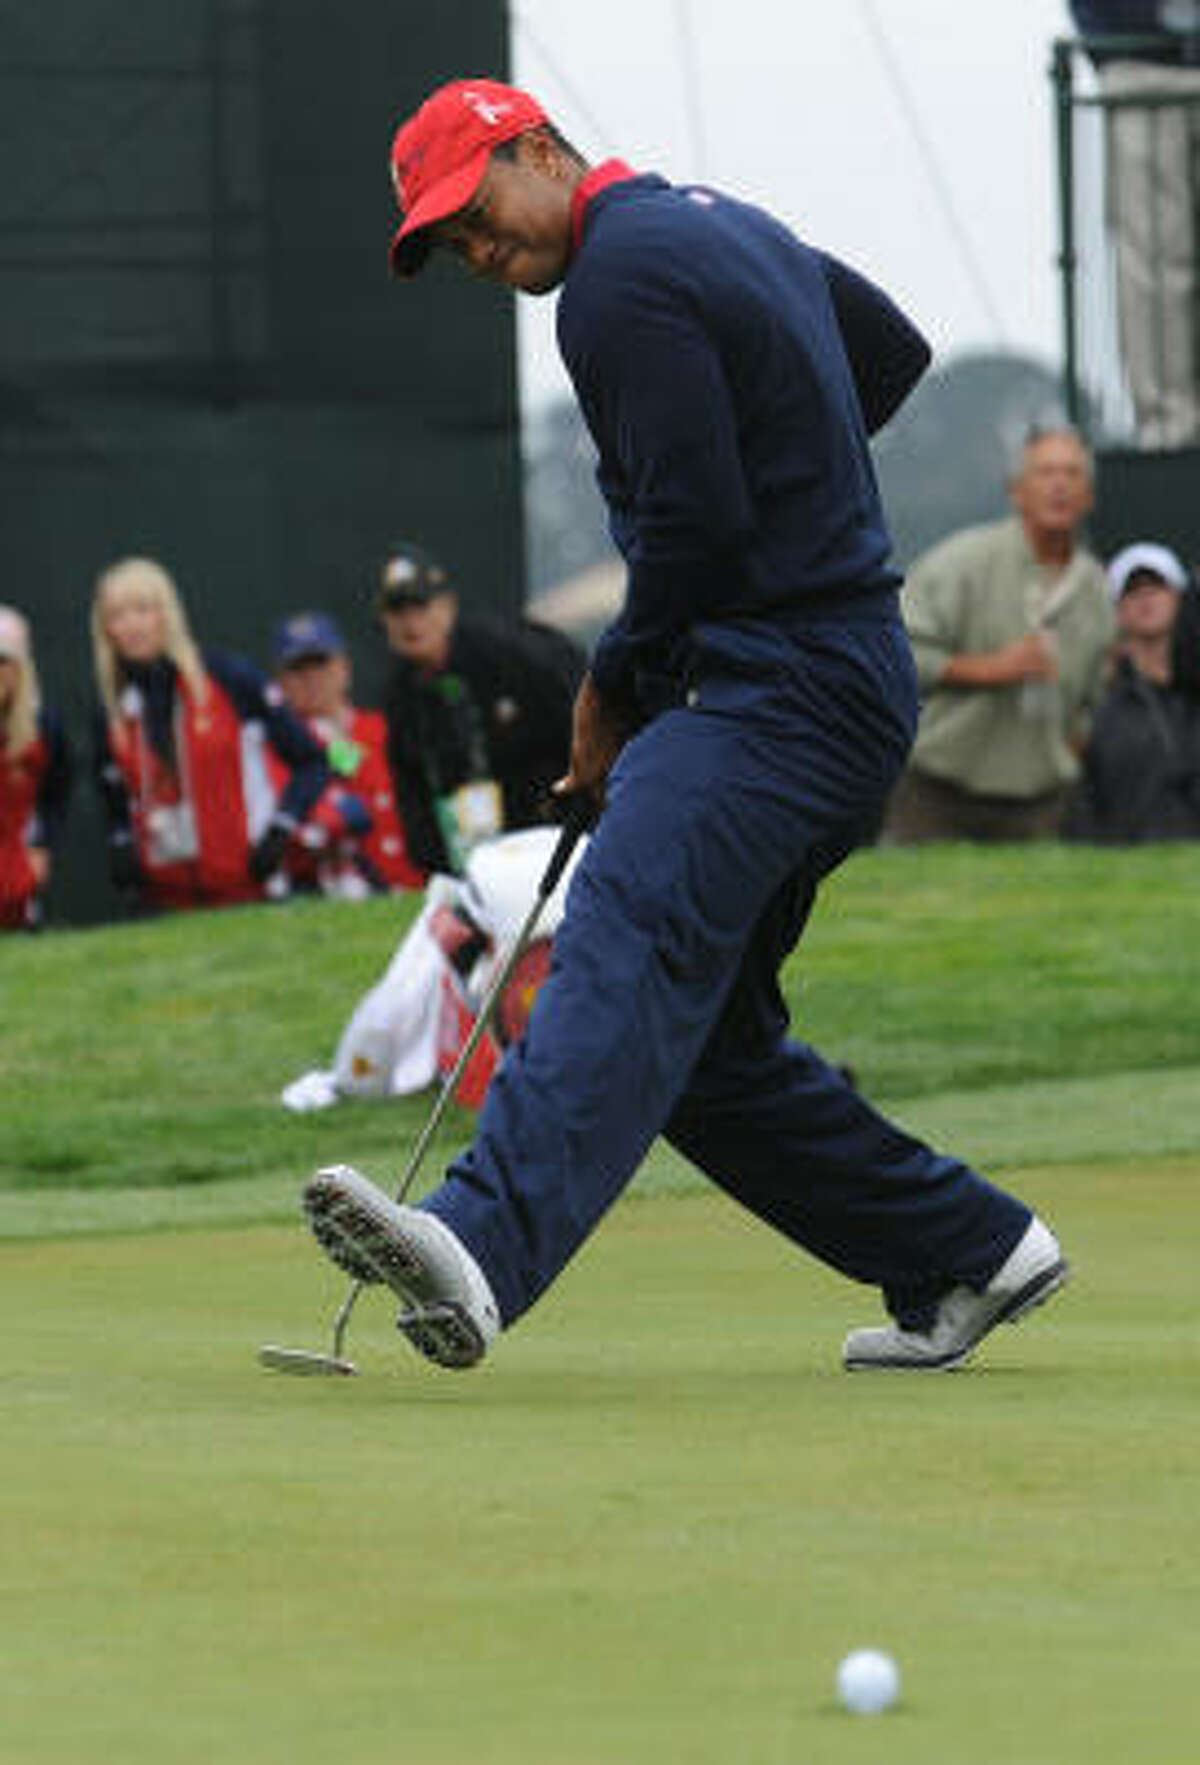 U.S. team member Tiger Woods prepares to celebrate as he sinks a putt on the ninth hole during the final round. He won all five of his matches, becoming only the third player in the Presidents Cup to do so.